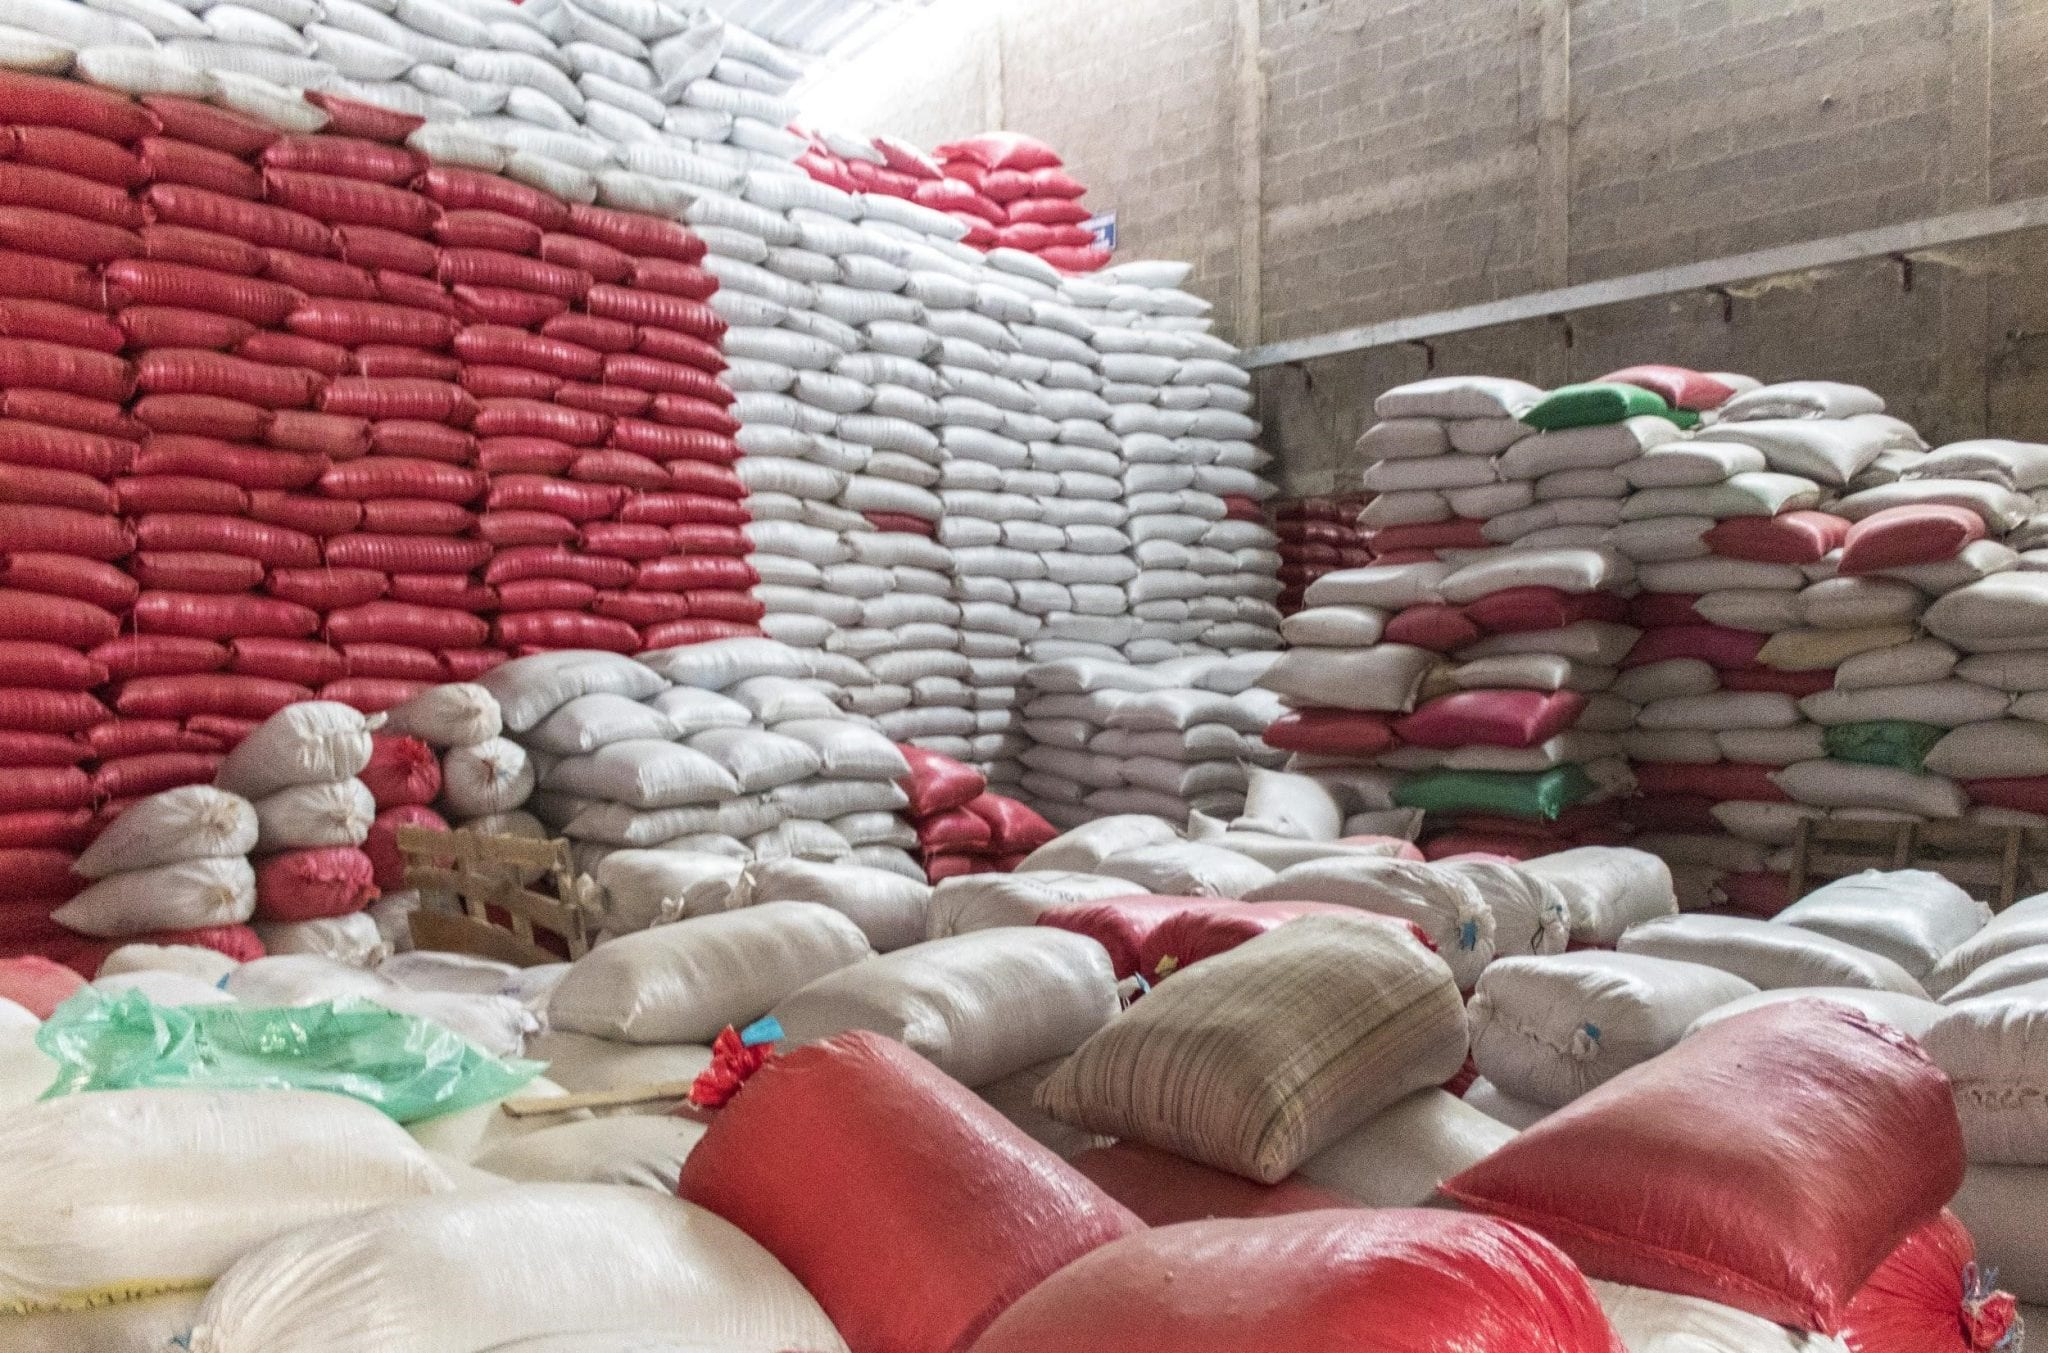 a lot coffee bags ready to be exported